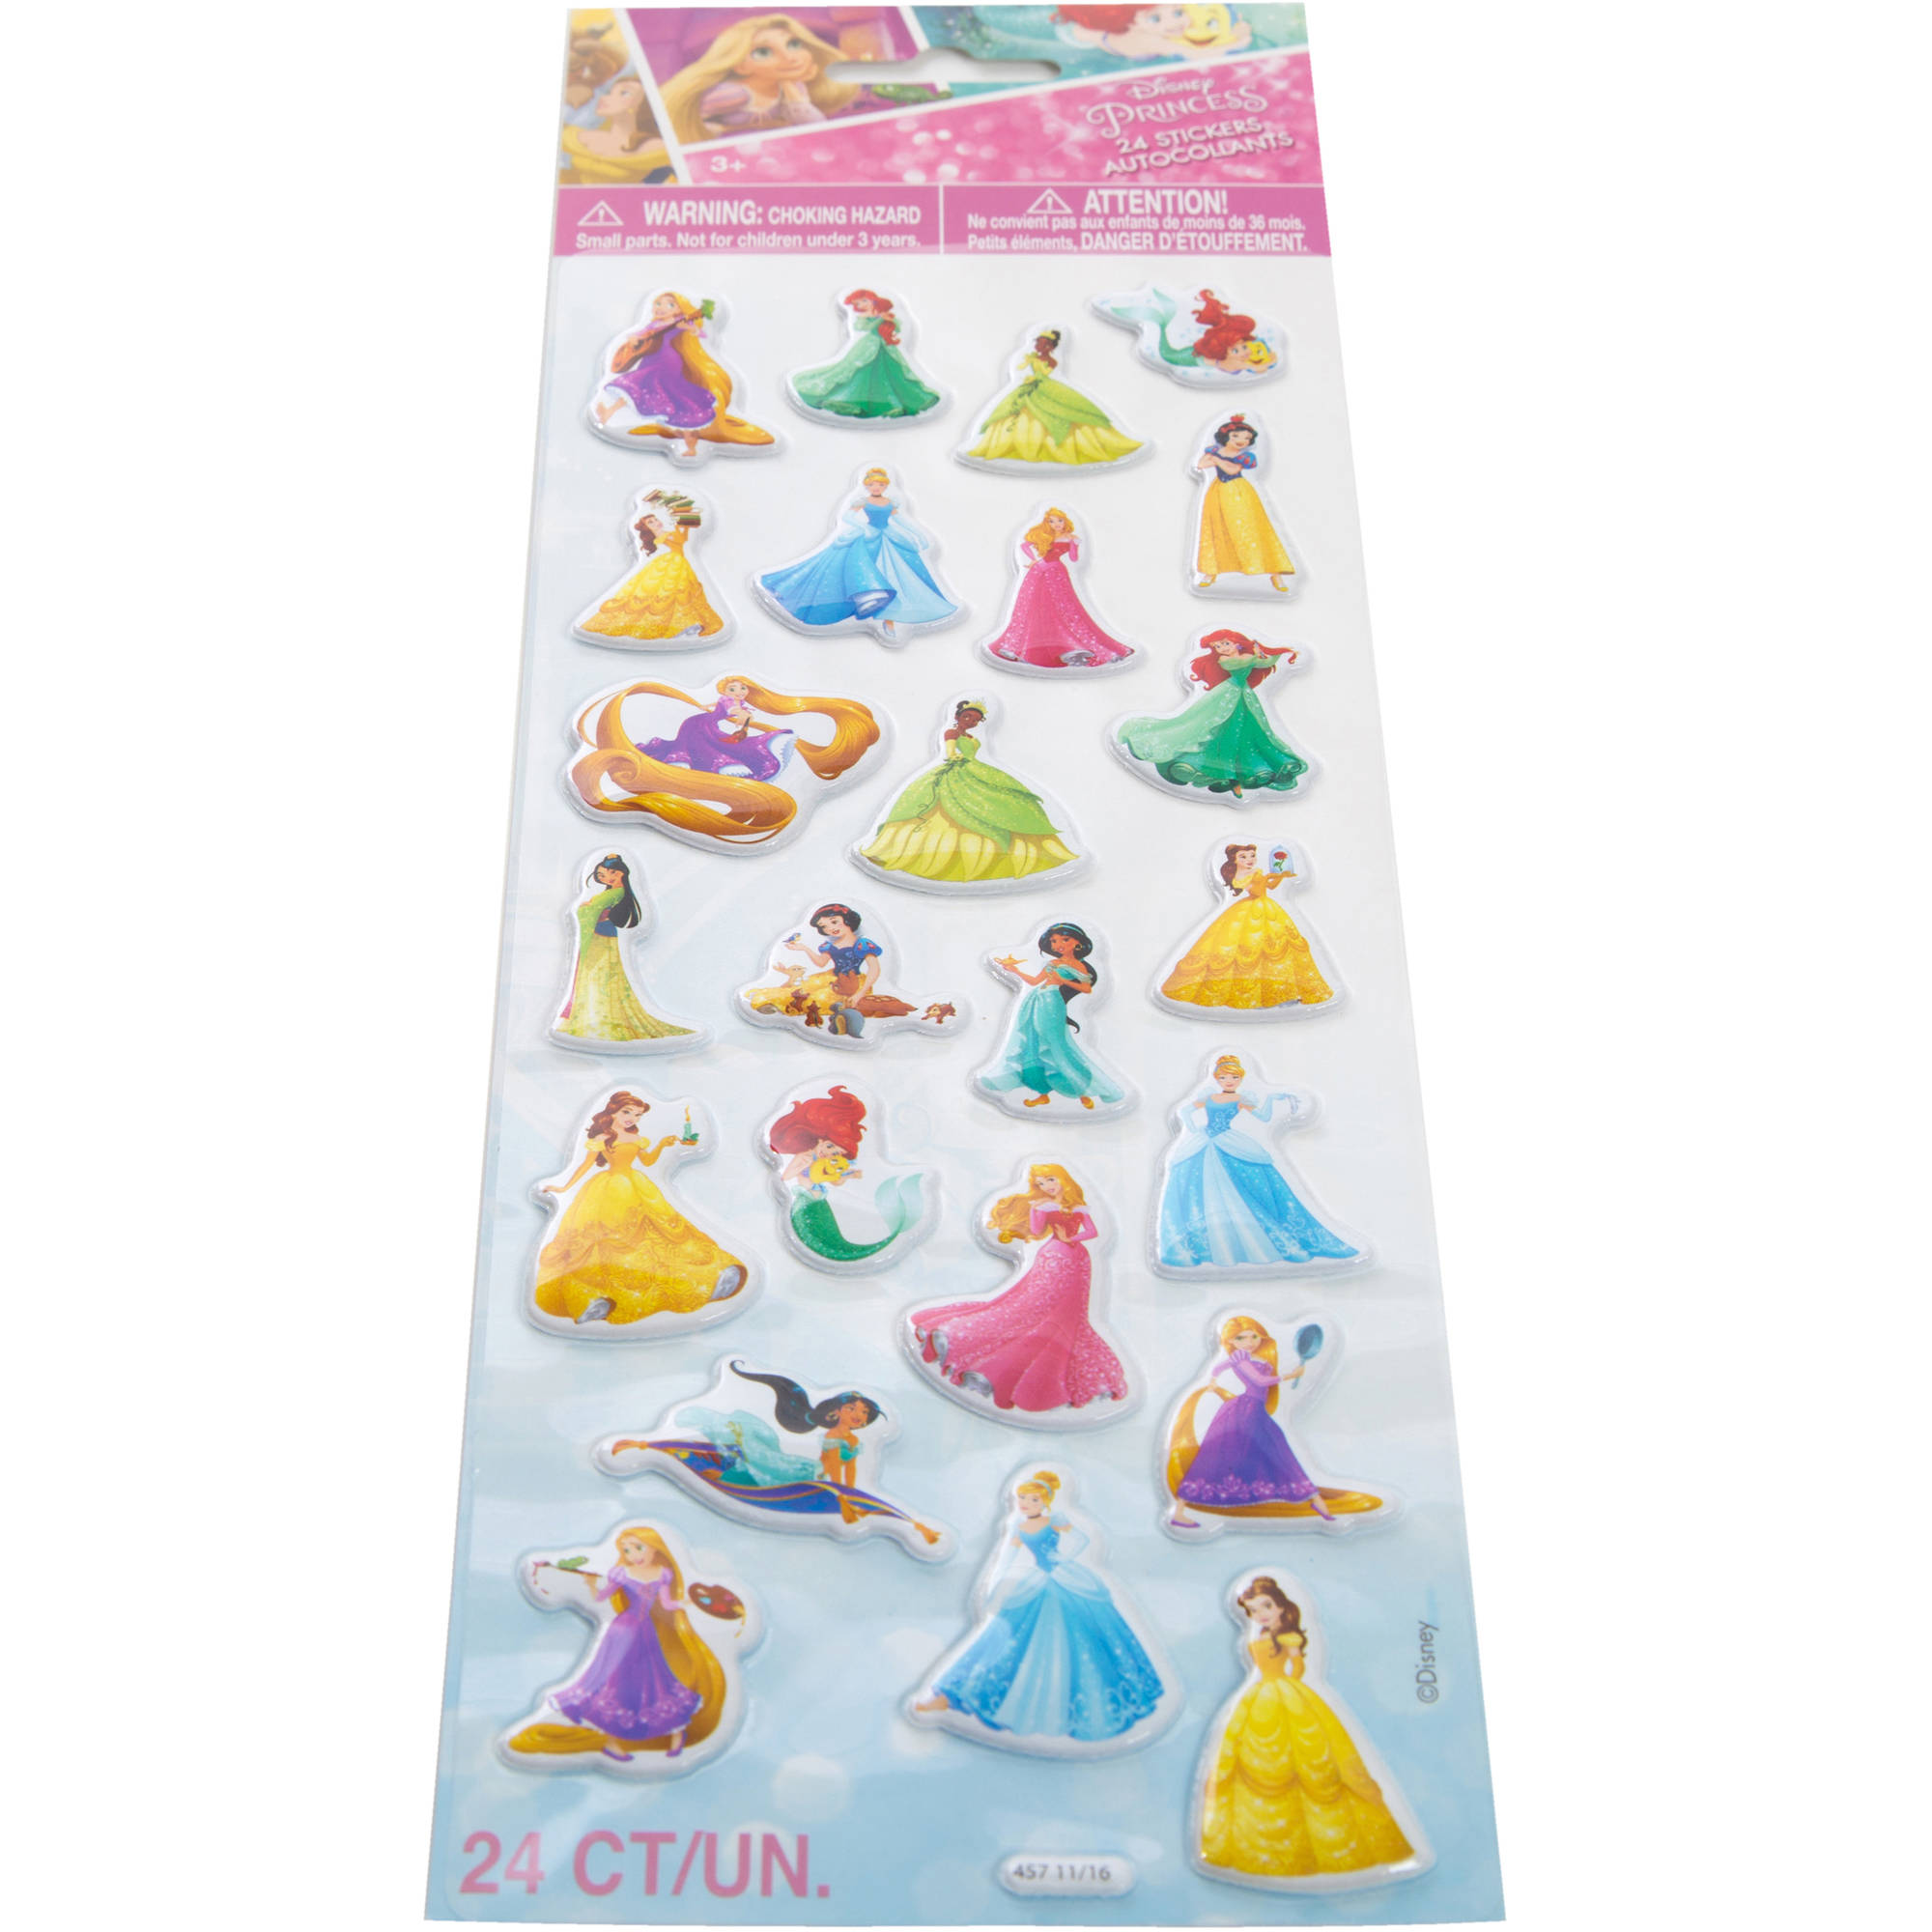 Disney Princess Puffy Sticker Sheet, 1ct